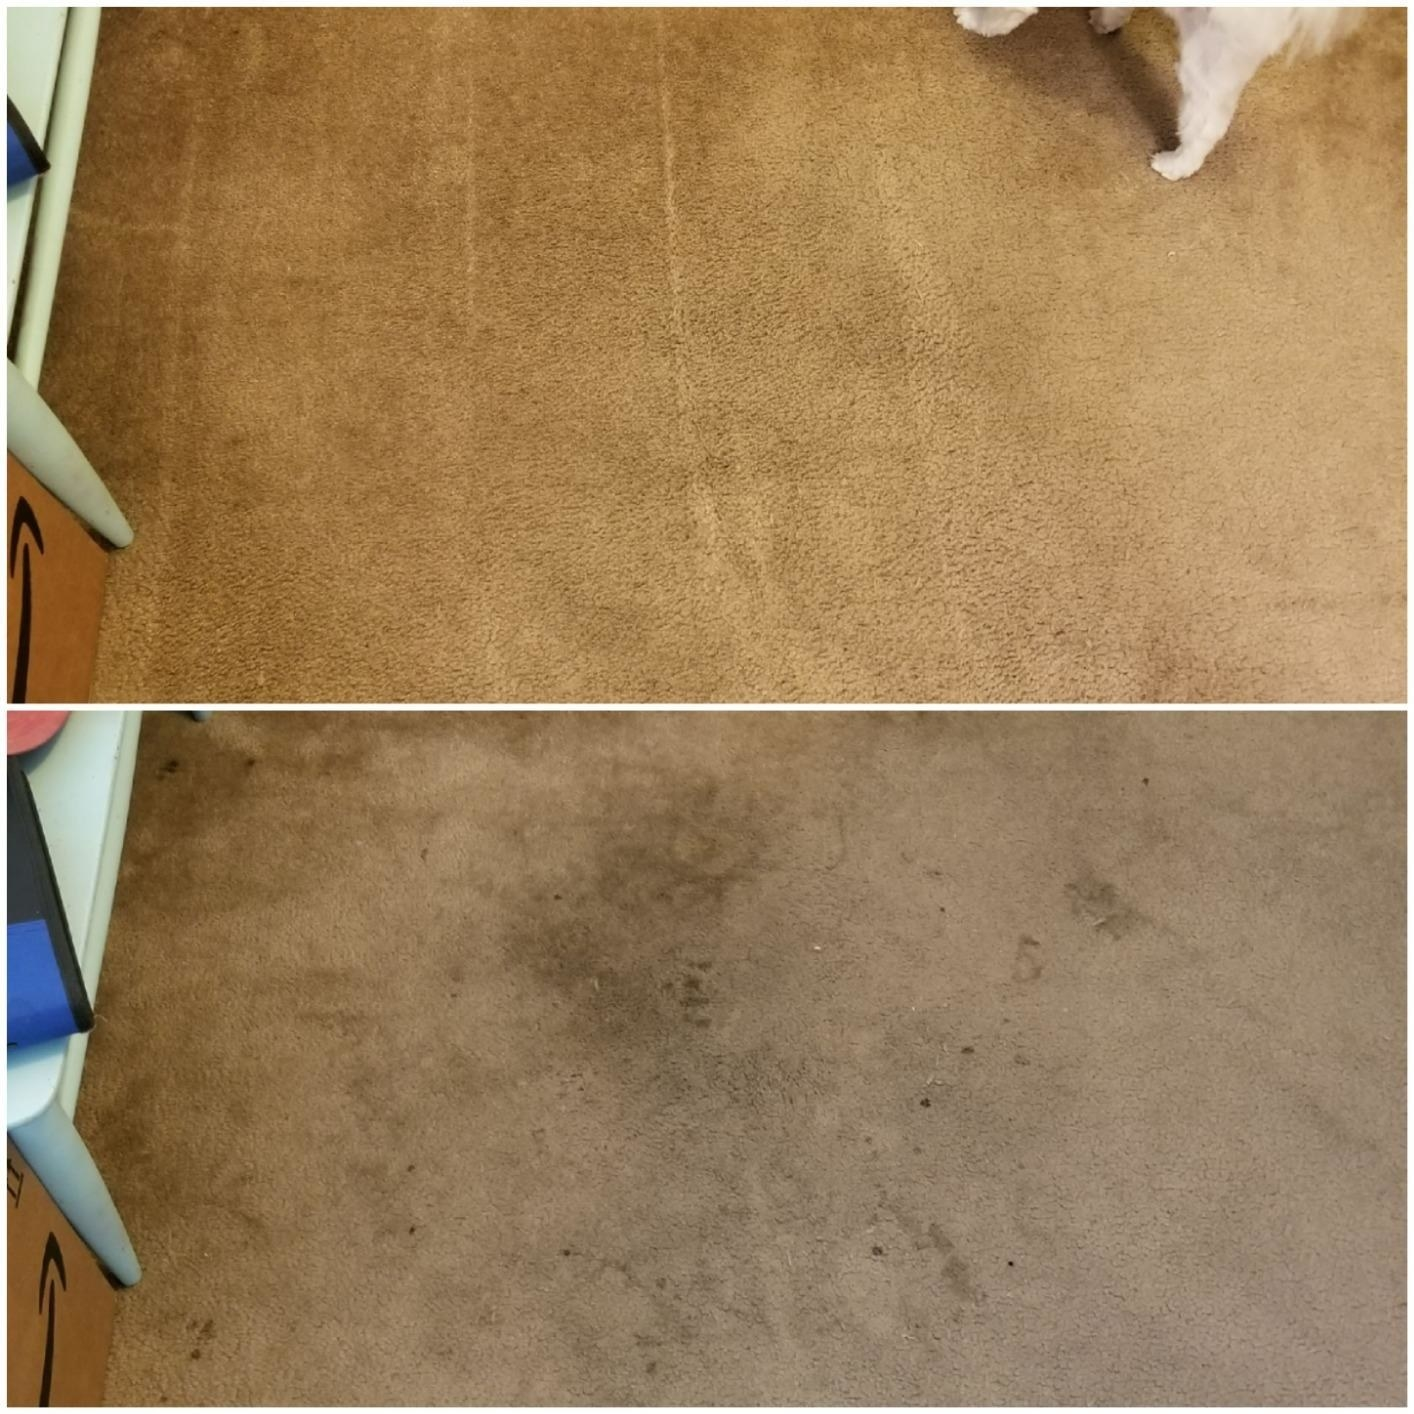 A reviewer's before and after photos which show a stained carpet and then a perfectly clean carpet